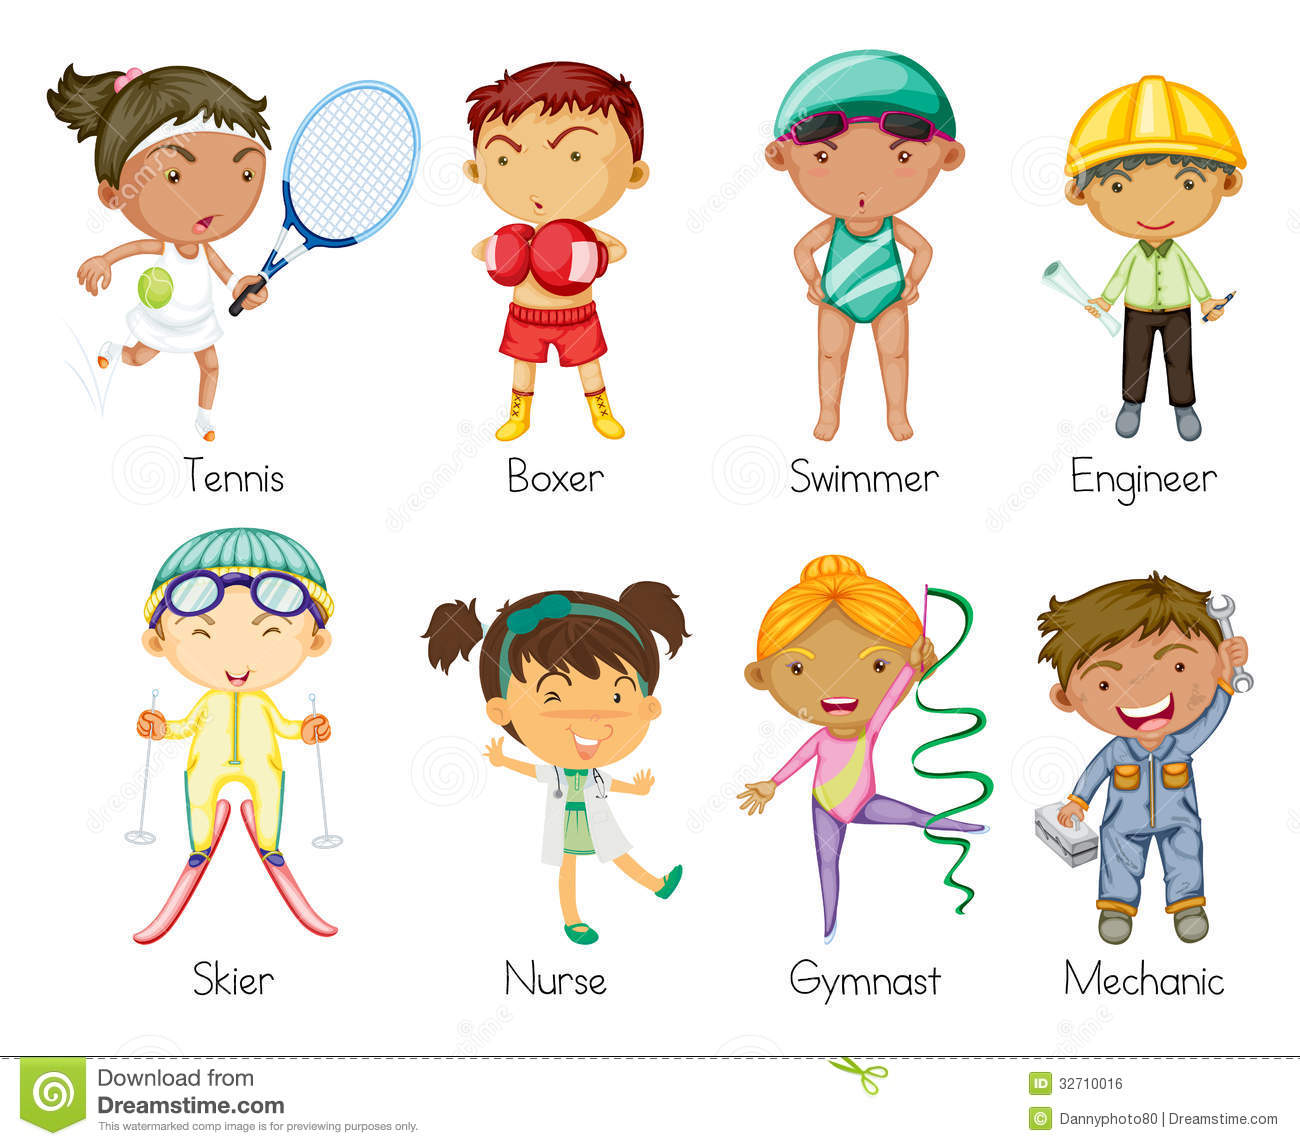 Illustration of various sports kids on a white background.